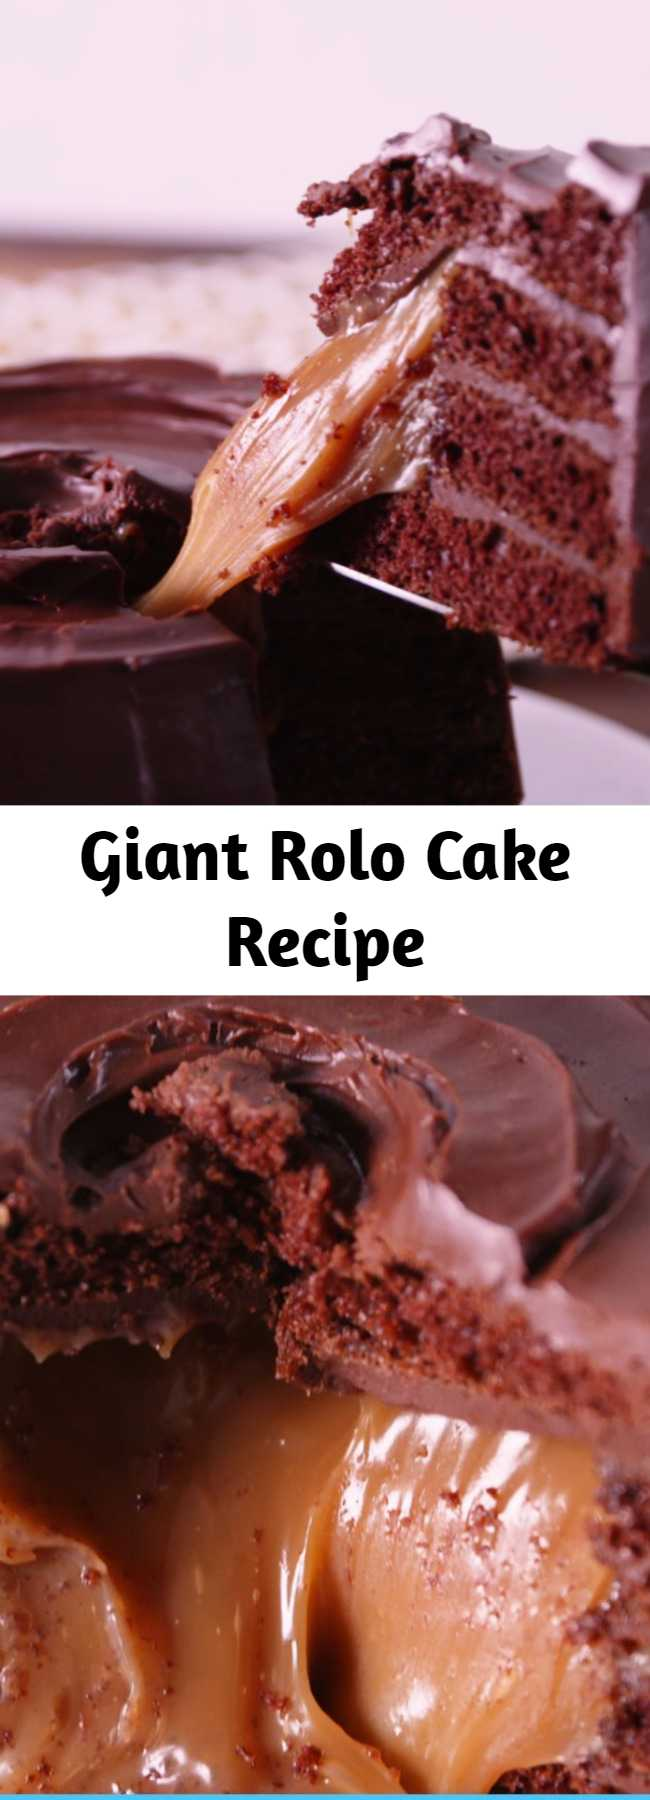 Giant Rolo Cake Recipe - Rolo lovers, try not to freak out when you see this cake.